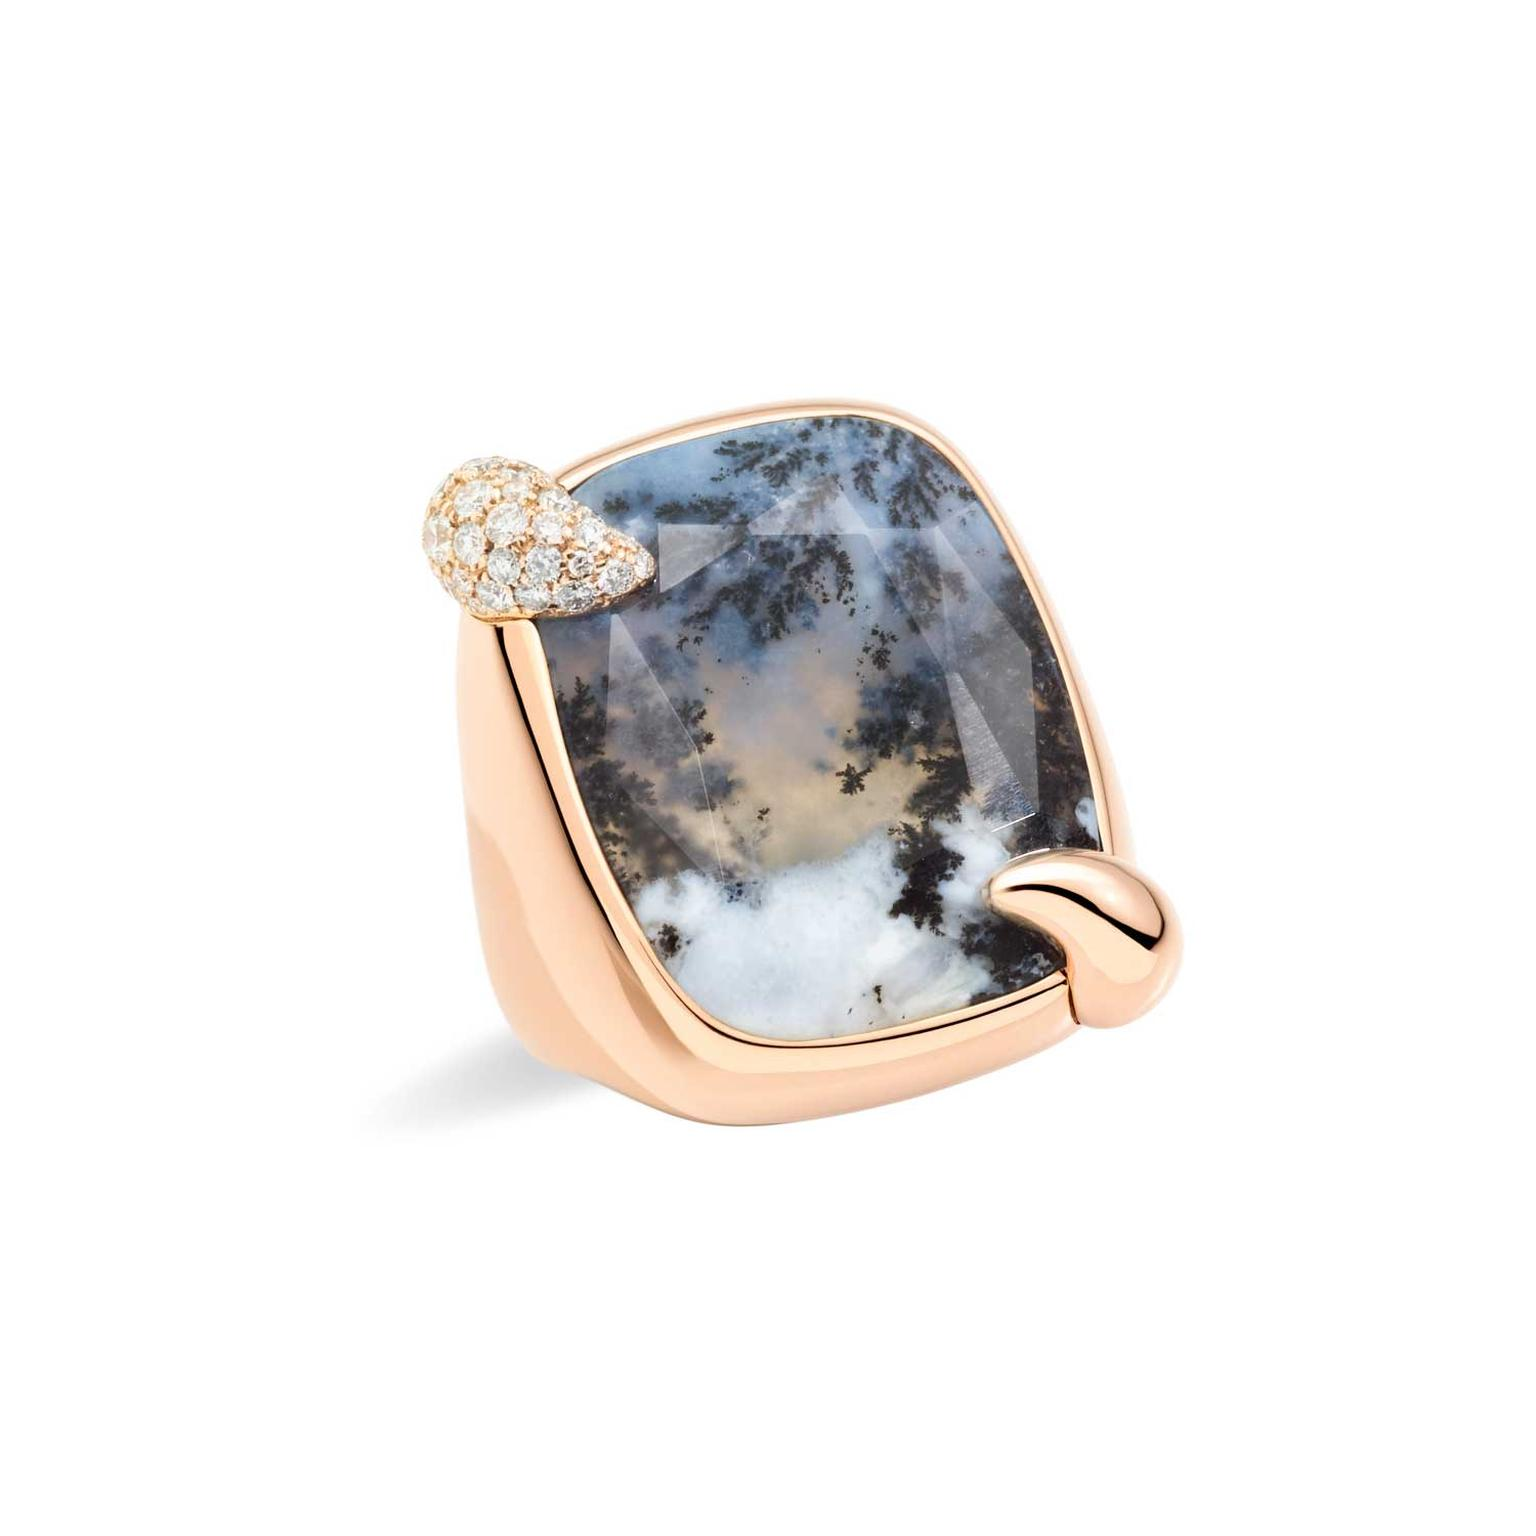 Pomellato Ritratto 50th anniversary Stormy Weather dendritic agate ring